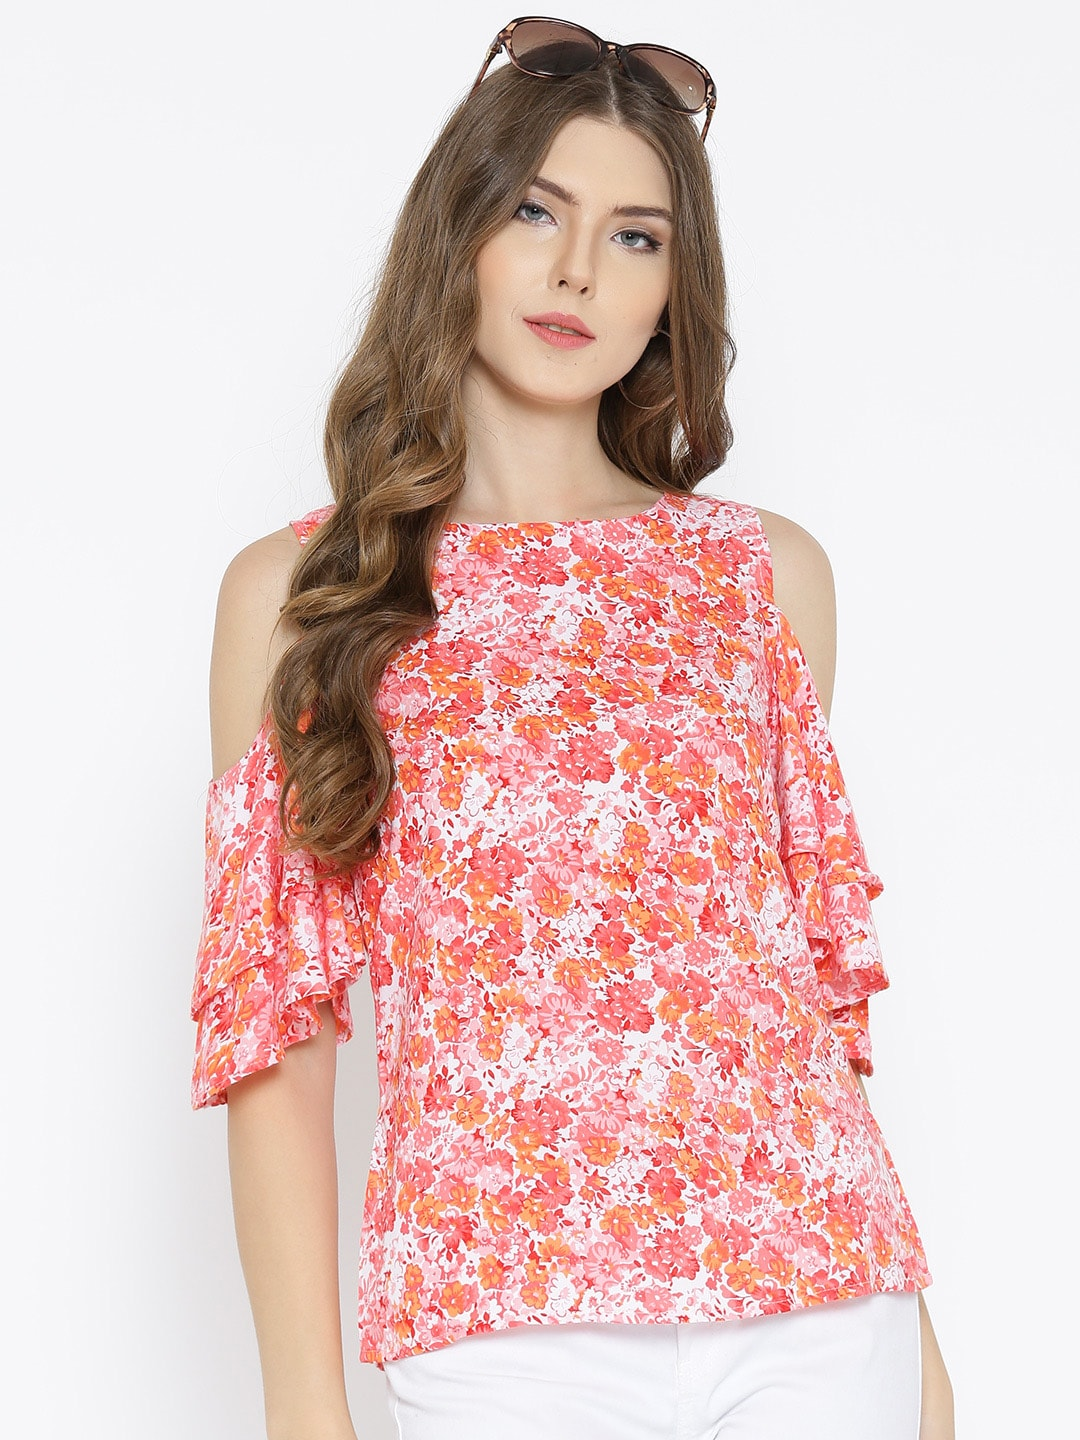 08987a133e767 Cold Shoulder Tops - Buy Cold Shoulder Tops for Women Online - Myntra